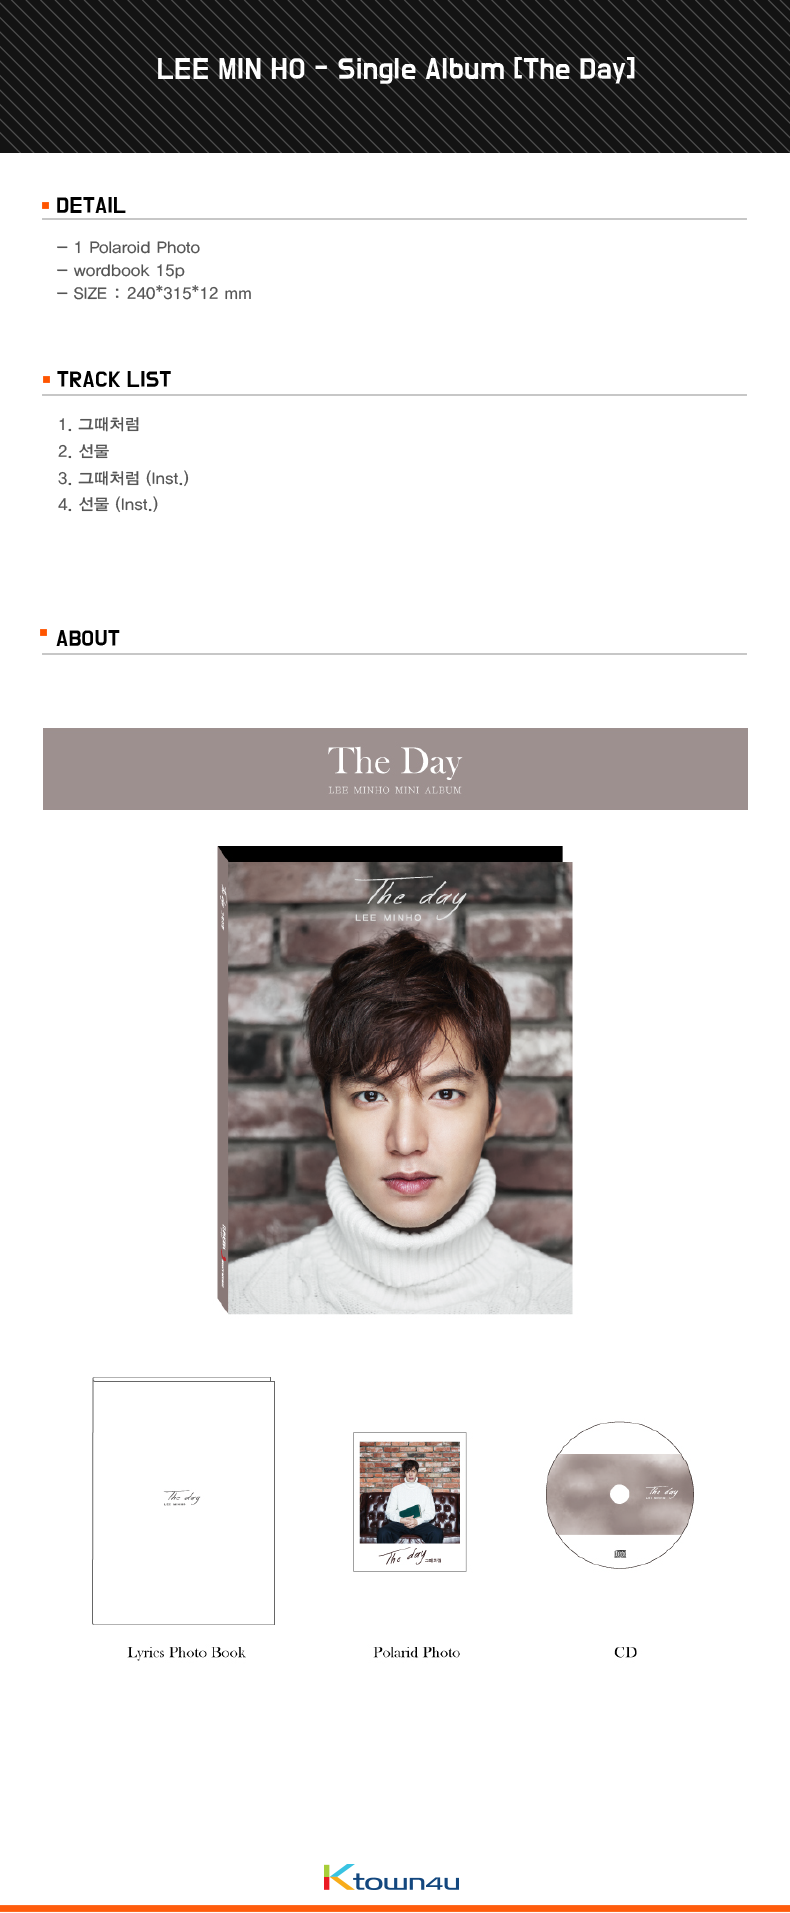 LEE MIN HO - Single Album [The Day]